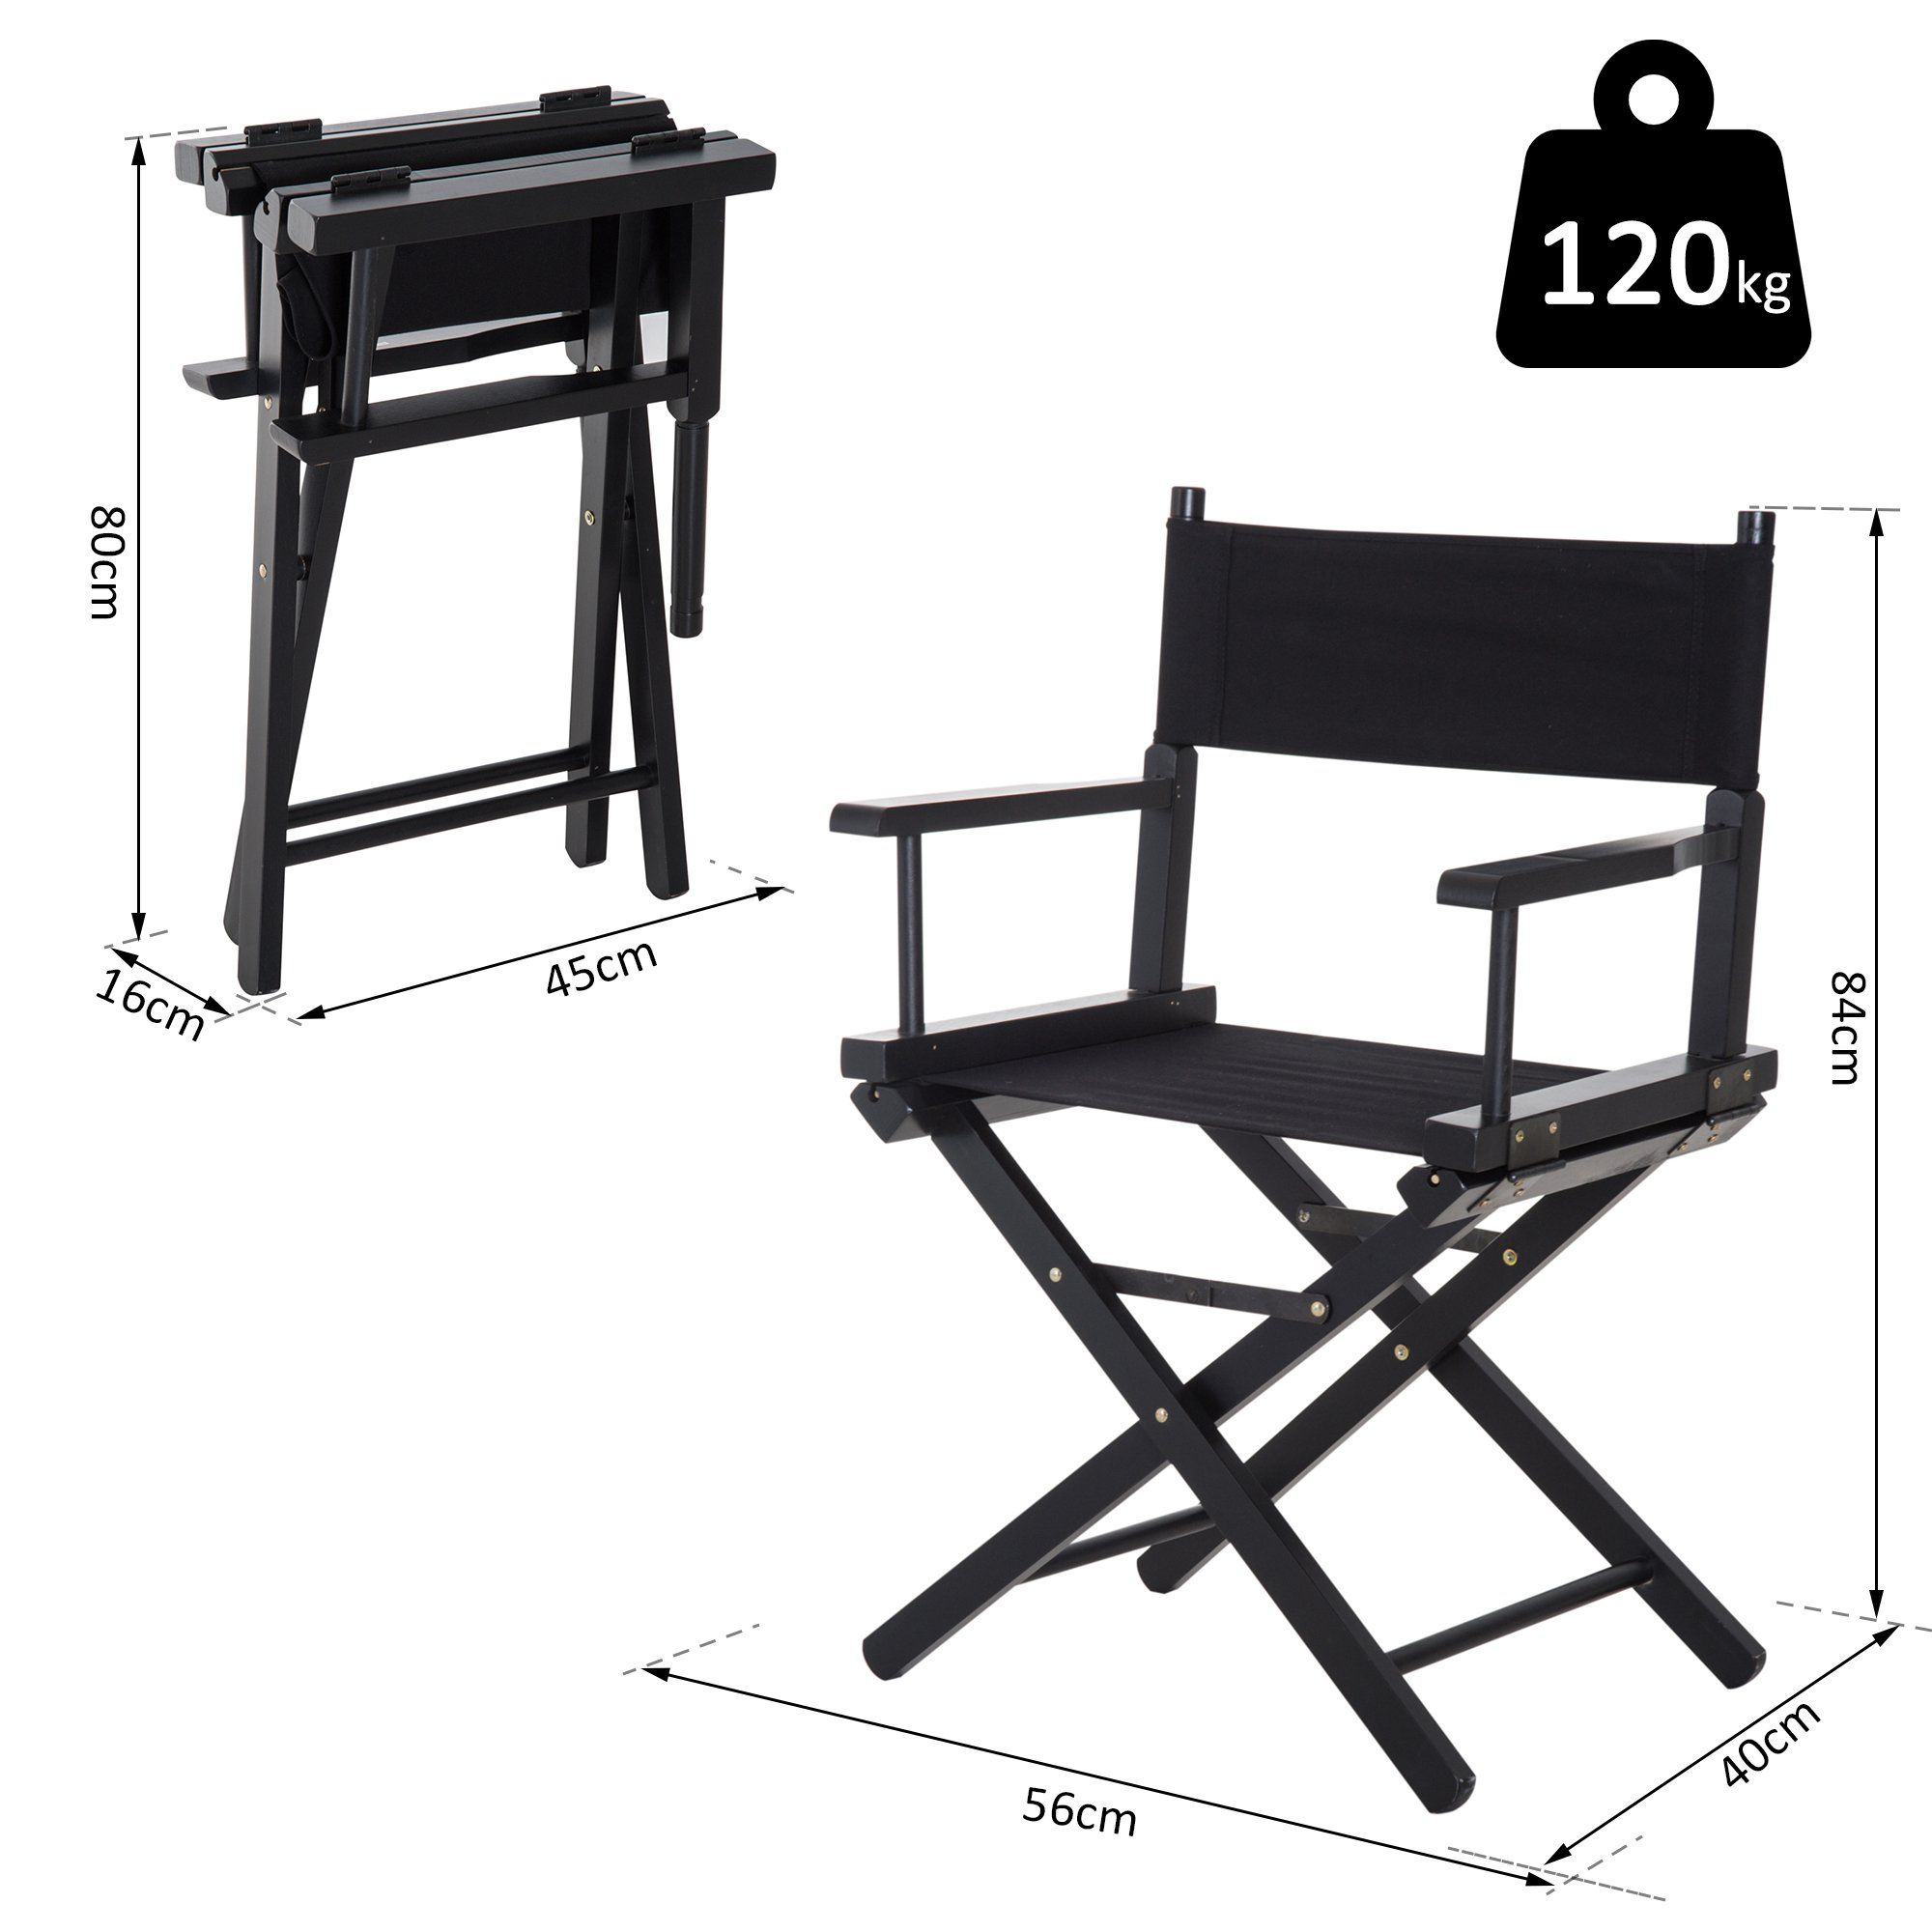 Fundas Sillas Director.Silla De Director Plegable En Madera Para Cine